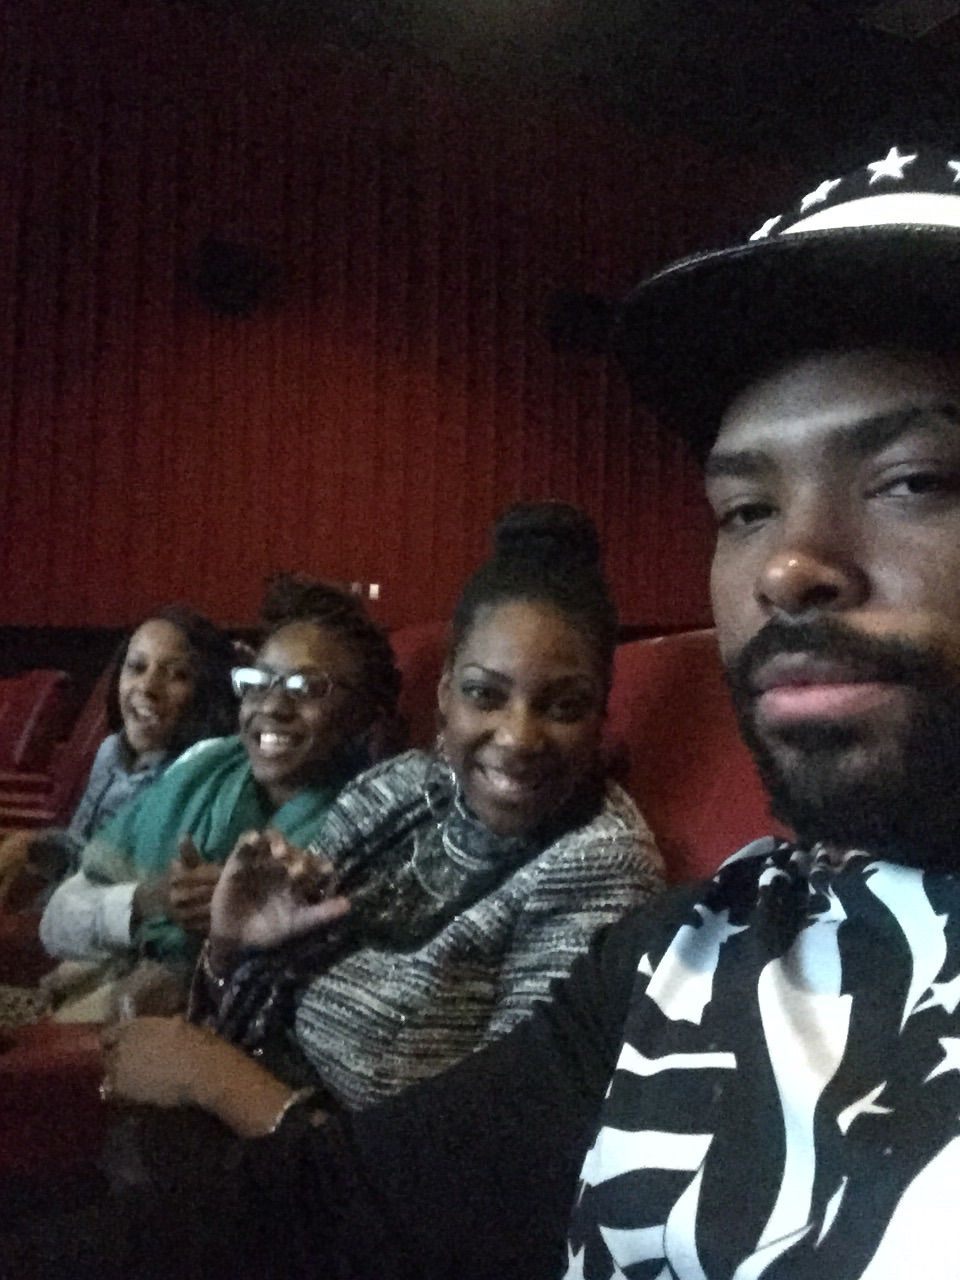 I forgot what movie we went to see but it was fun hanging with my peoples.